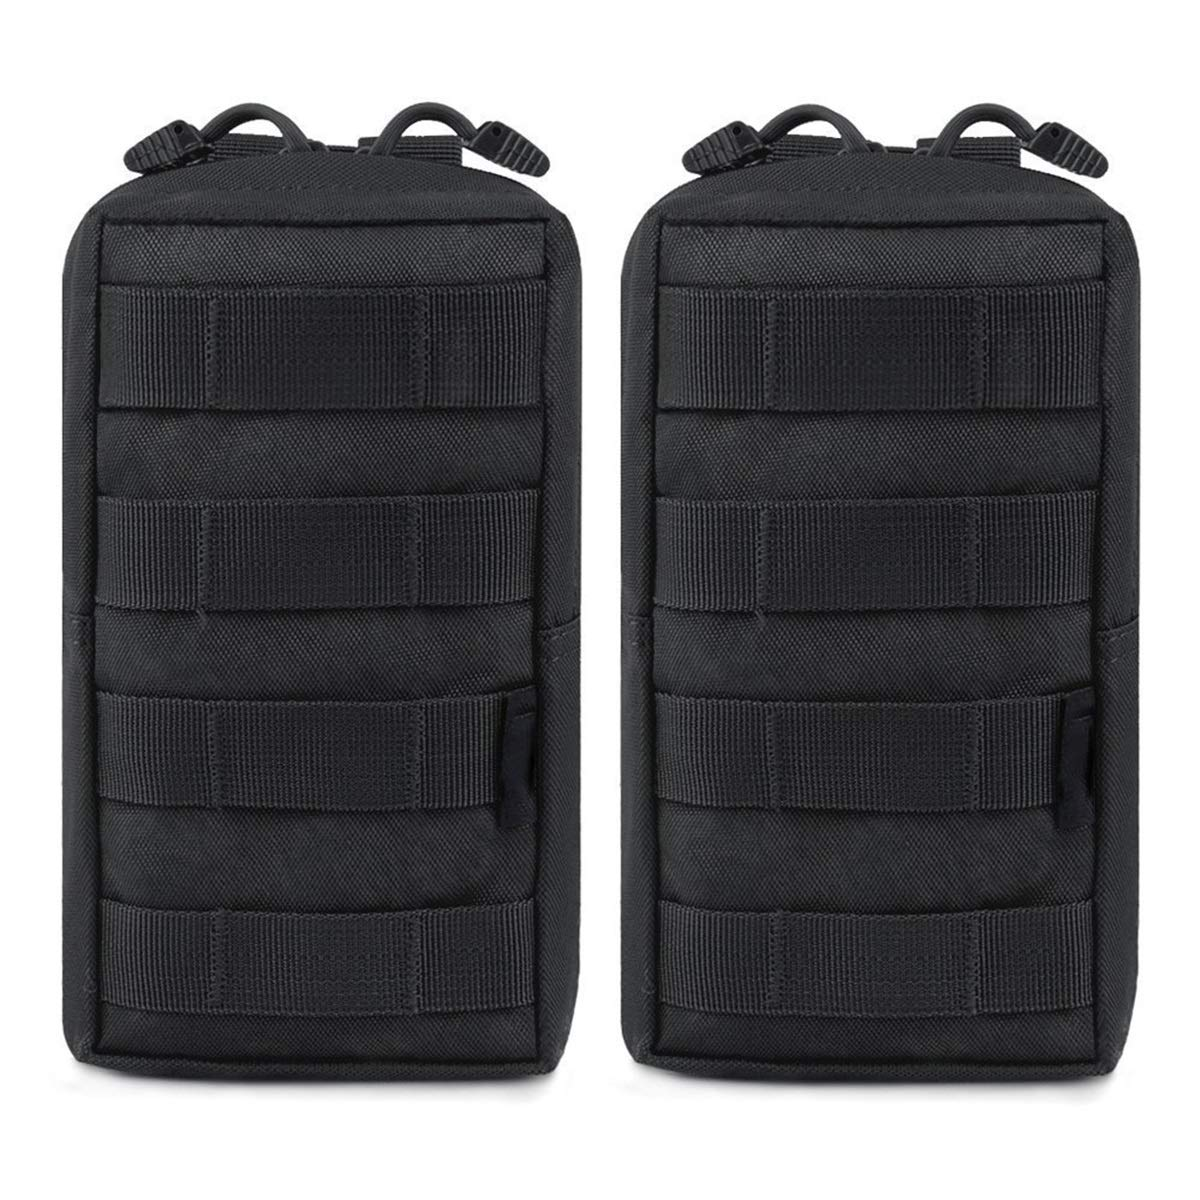 Color : Khaki 2 Pack Molle Pouches Tactical Compact Water-Resistant EDC Pouch ACU//CP Camouflage